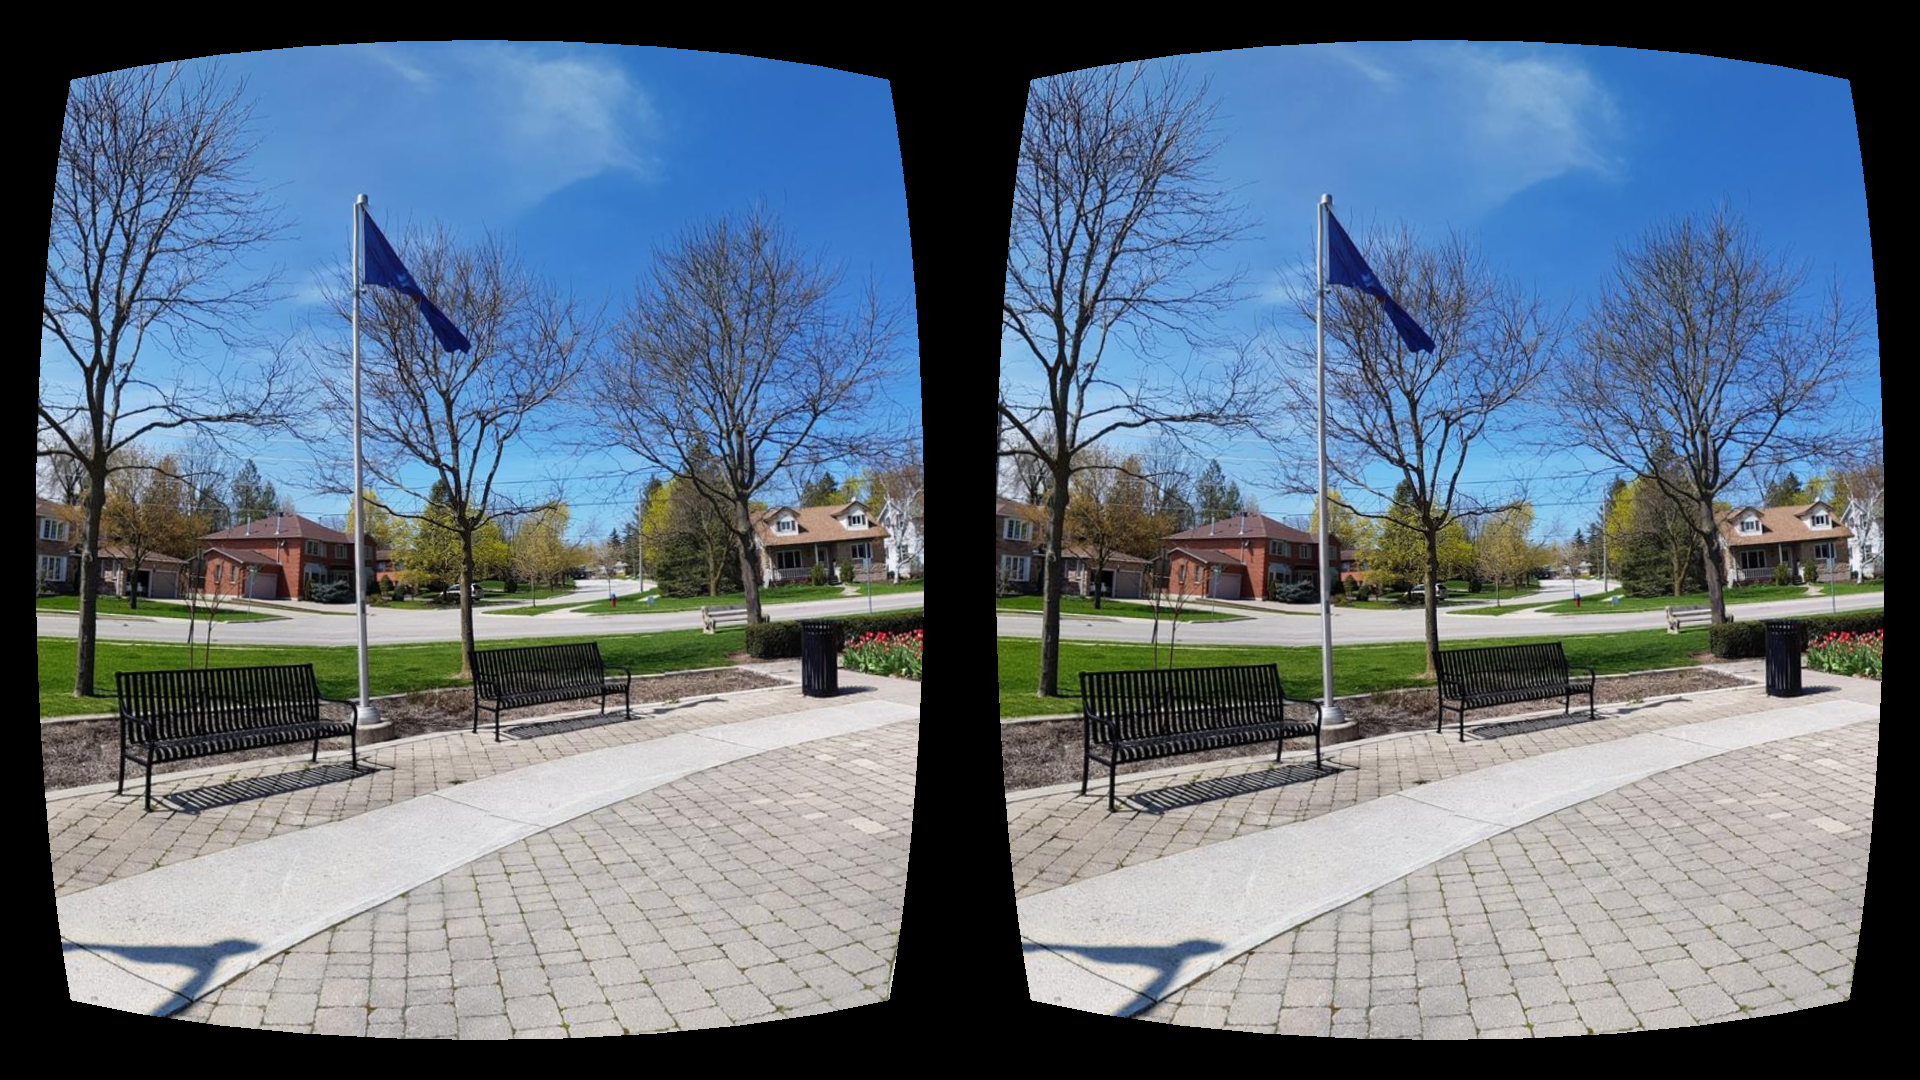 View your 360° photos or videos in VR using Google Cardboard